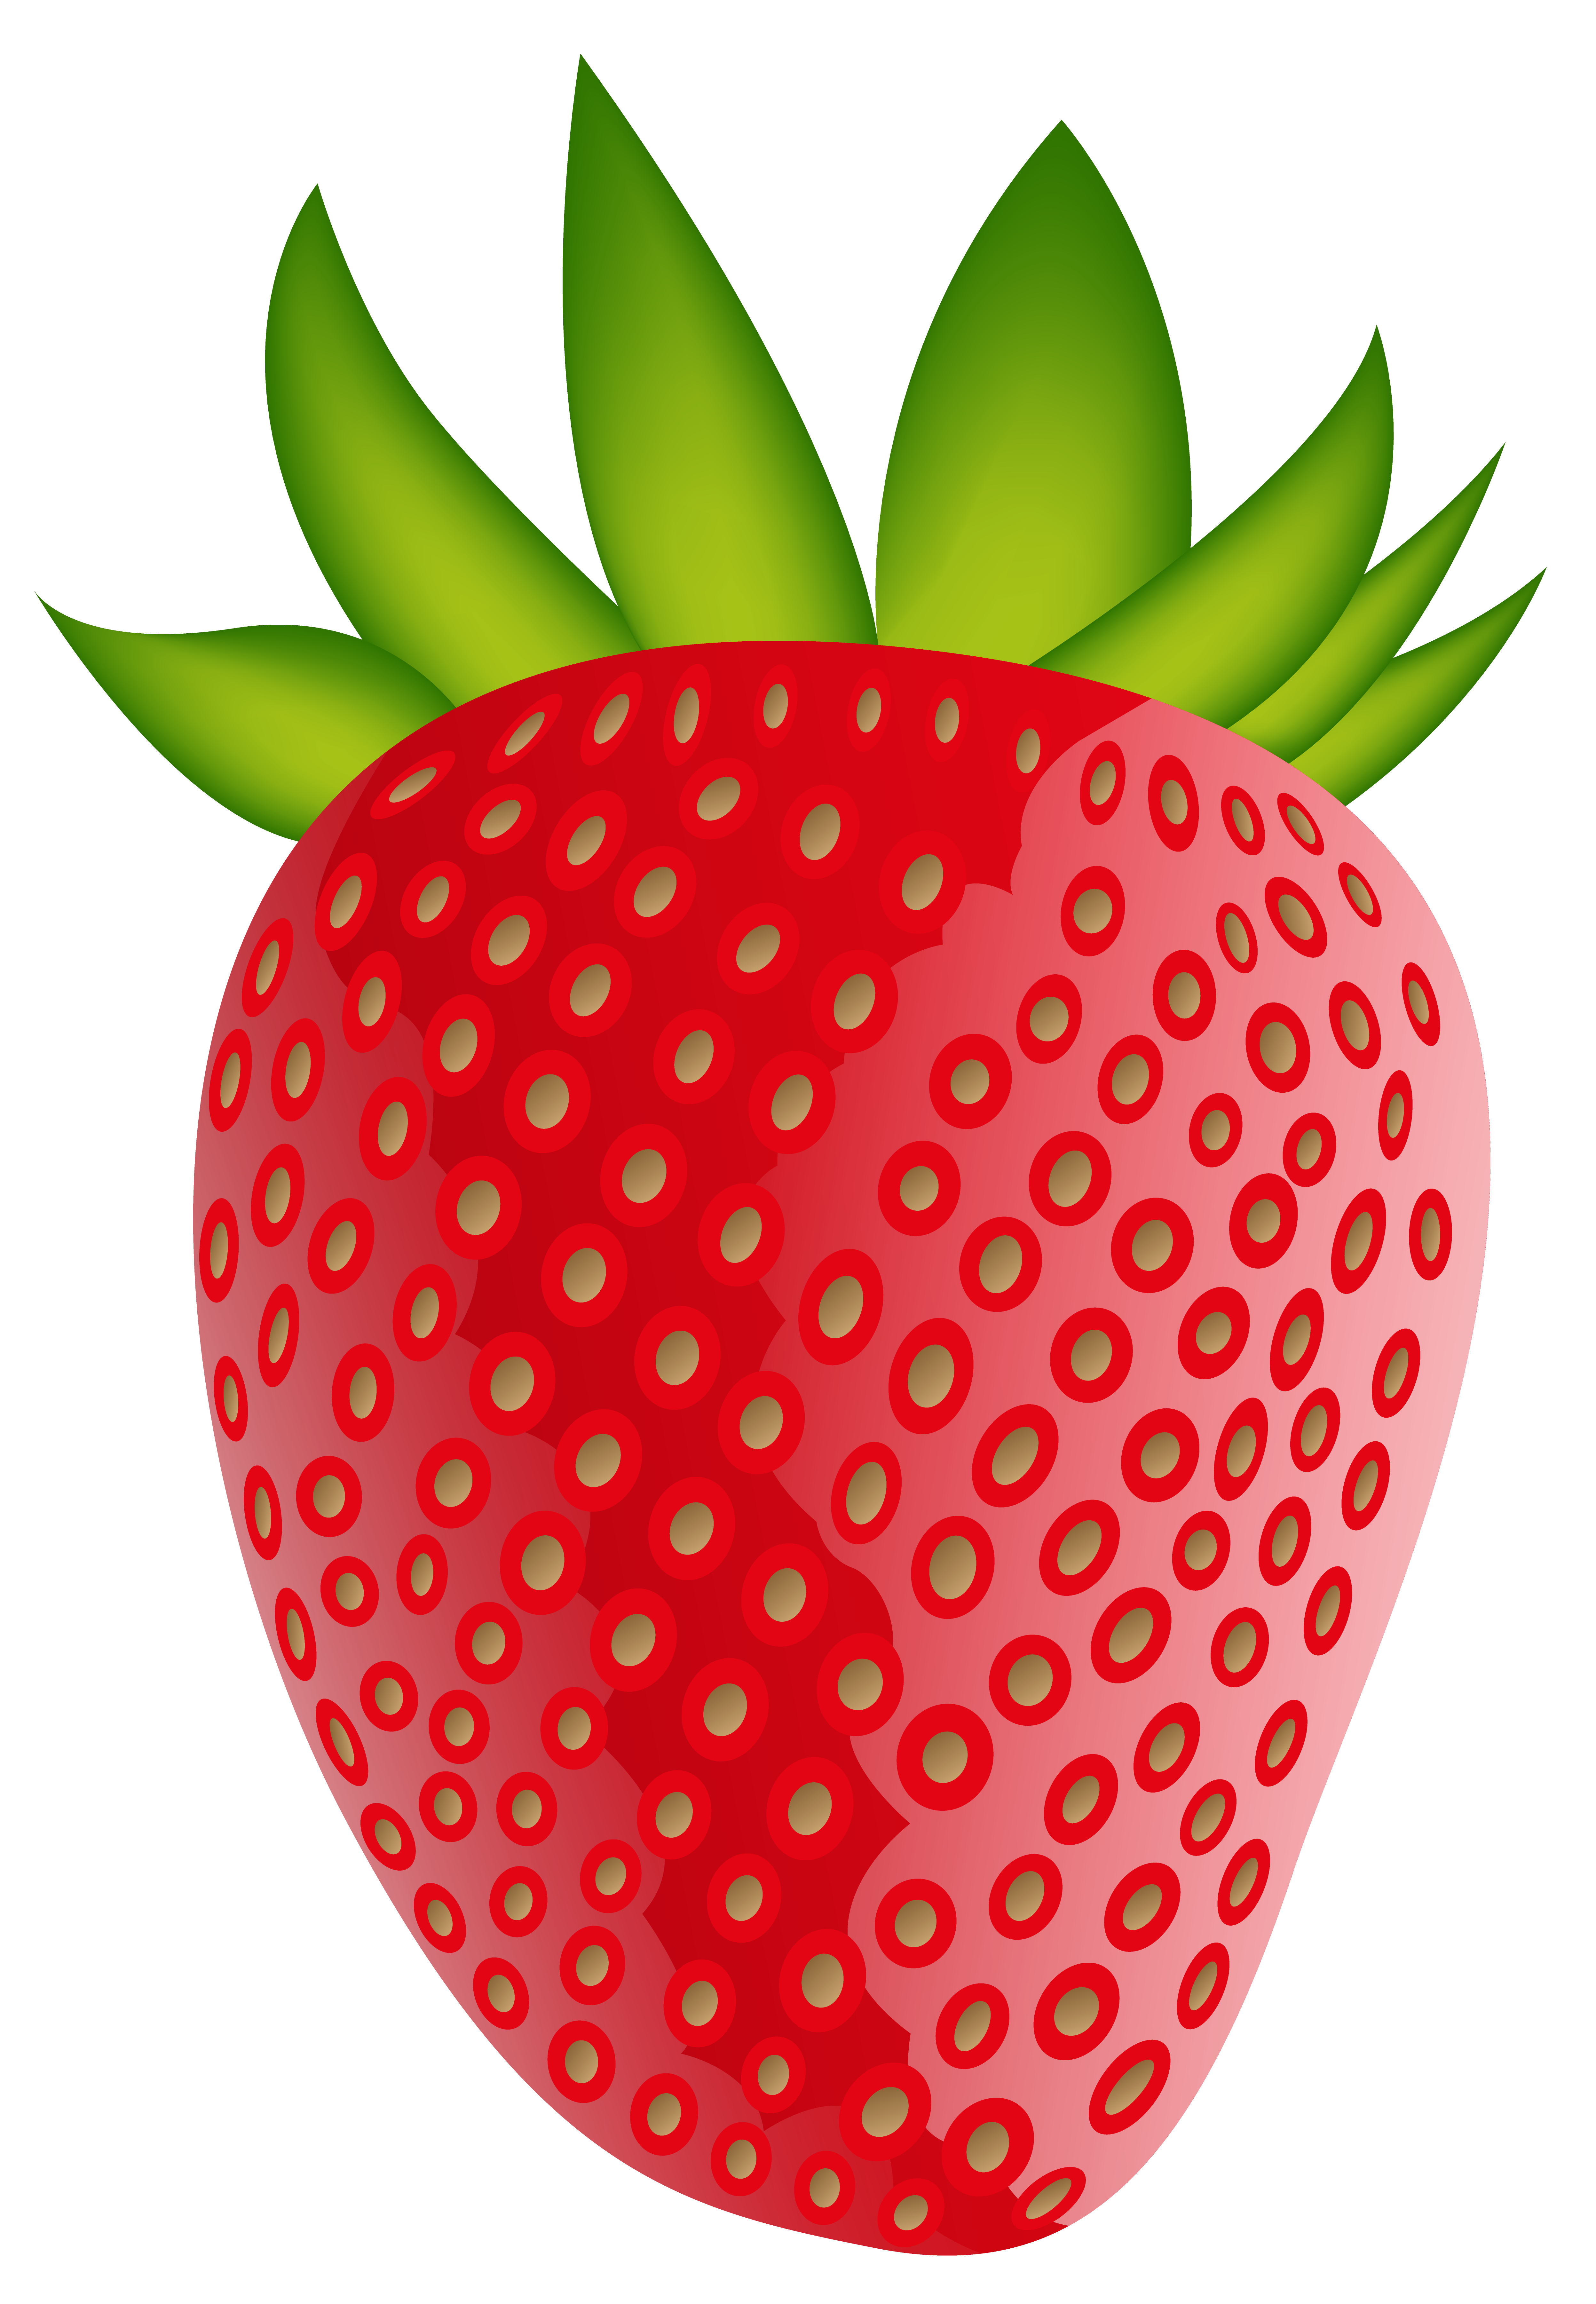 Strawberry heart clipart picture free library Strawberry PNG Clip Artt Image | Gallery Yopriceville - High ... picture free library